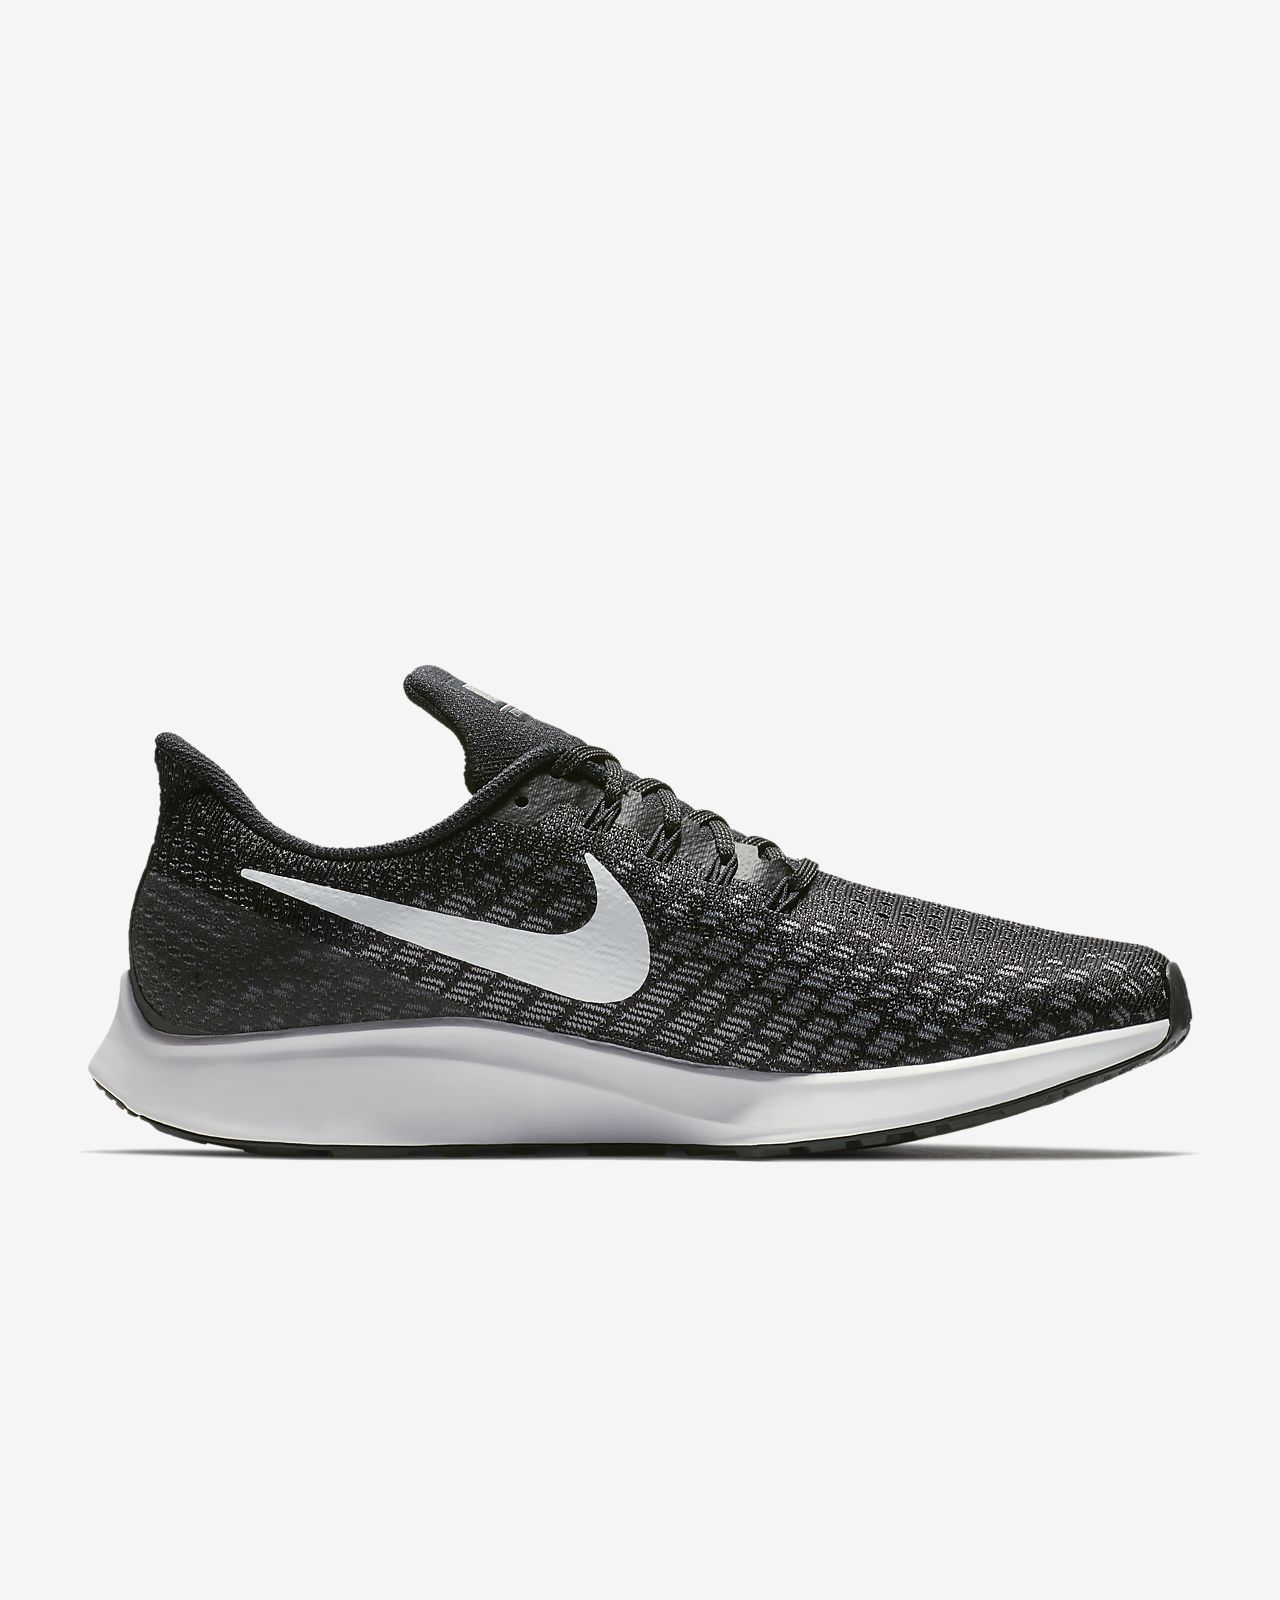 promo code 22049 94002 ... Chaussure de running Nike Air Zoom Pegasus 35 pour Homme